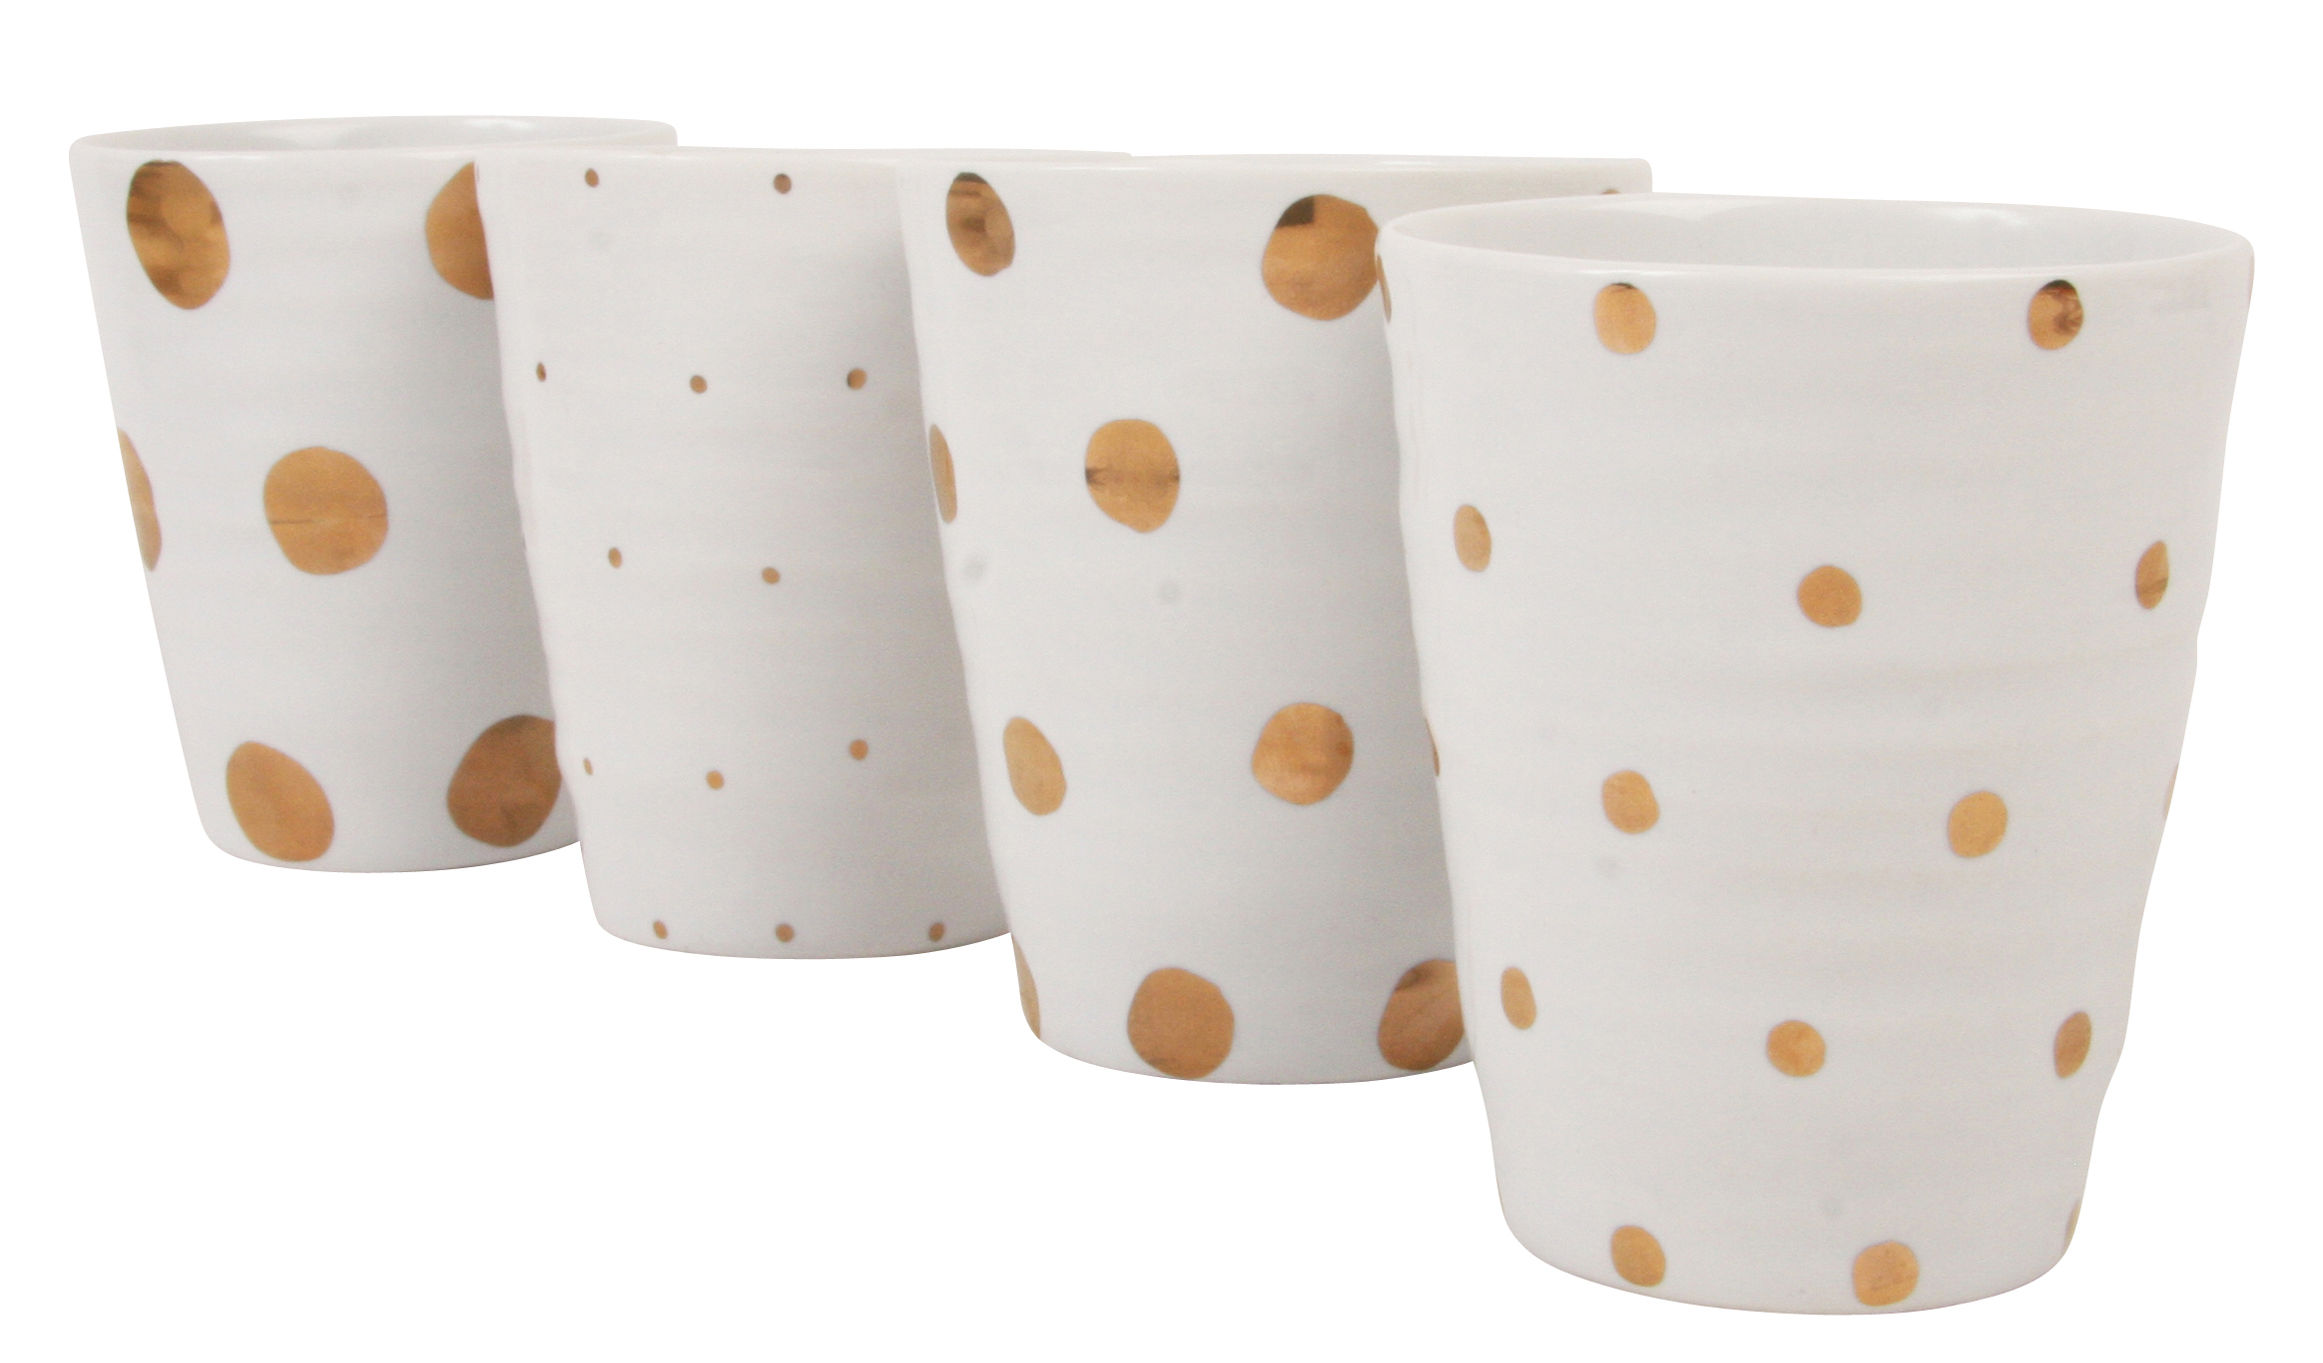 Tableware - Coffee Mugs & Tea Cups - Dotted Mug - / Set of 4 by & klevering - White / Gold dots - Ceramic